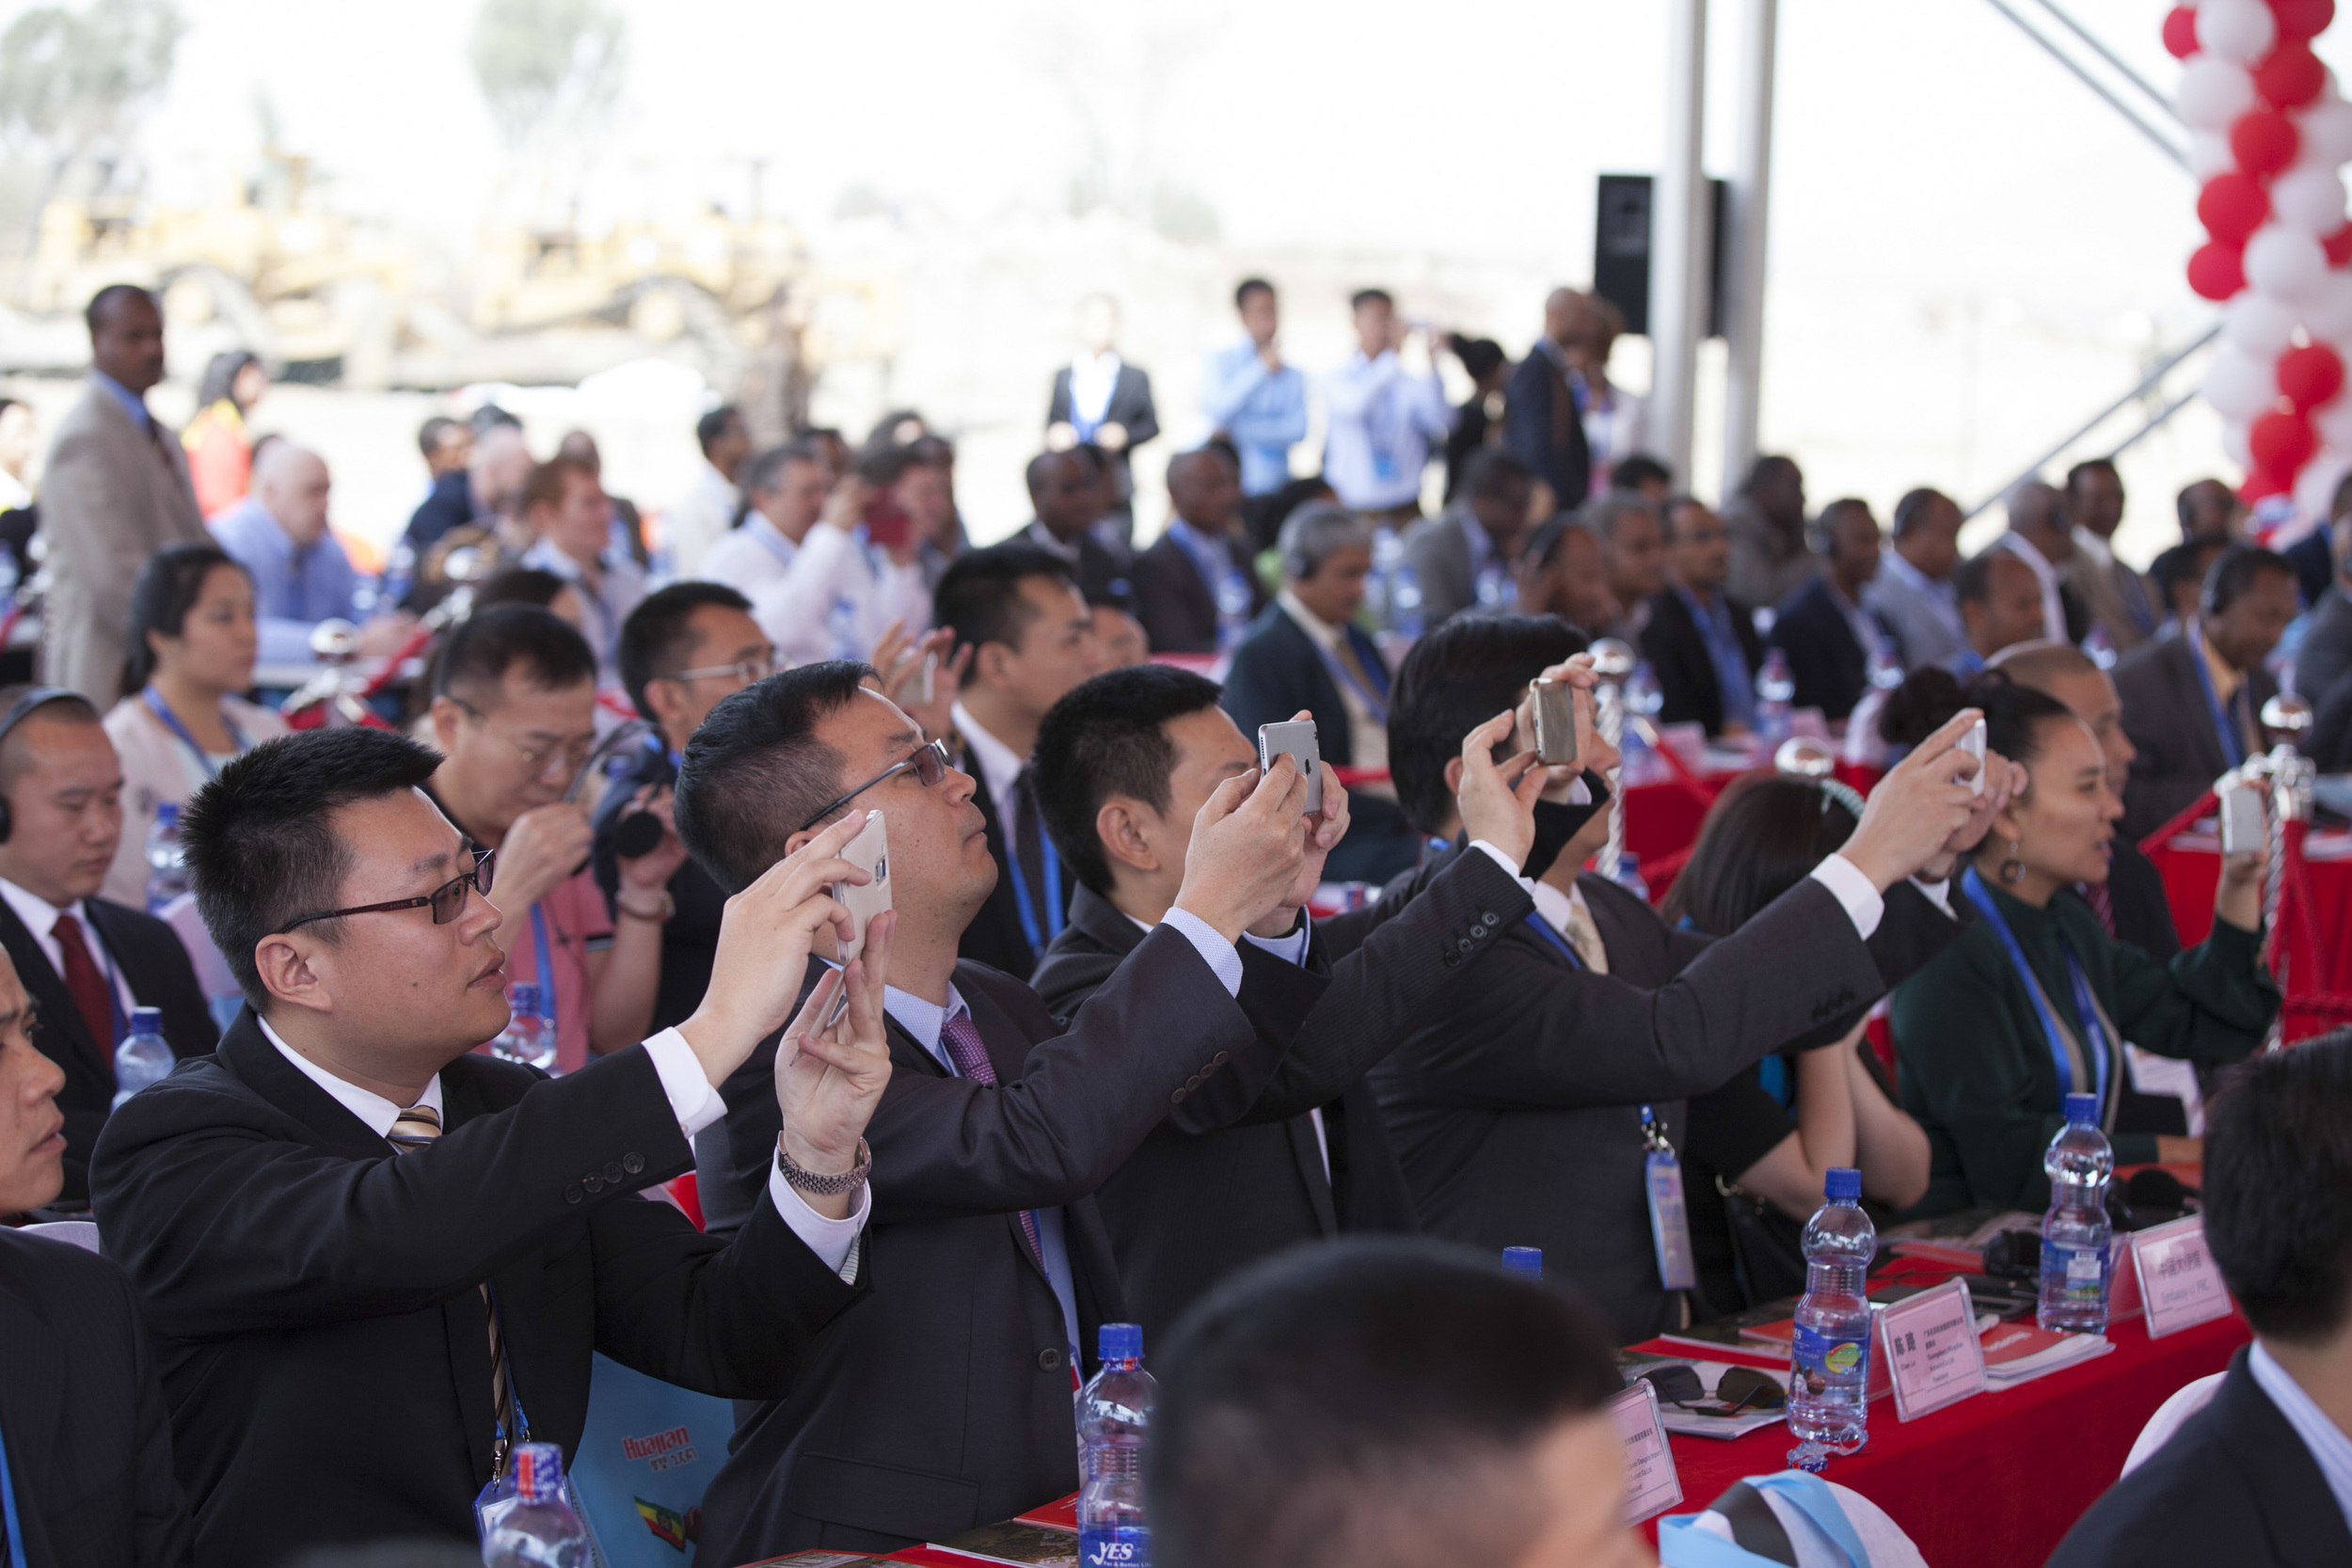 Chinese businessmen are pictured taking photos with their phones during the opening ceremony for the groundbreaking of the Ethiopia-China Dong Guan Huajian International Light Industrial Zone outside of Addis Ababa on 16 April 2015. AFP Photo / Zacharias Abubeker